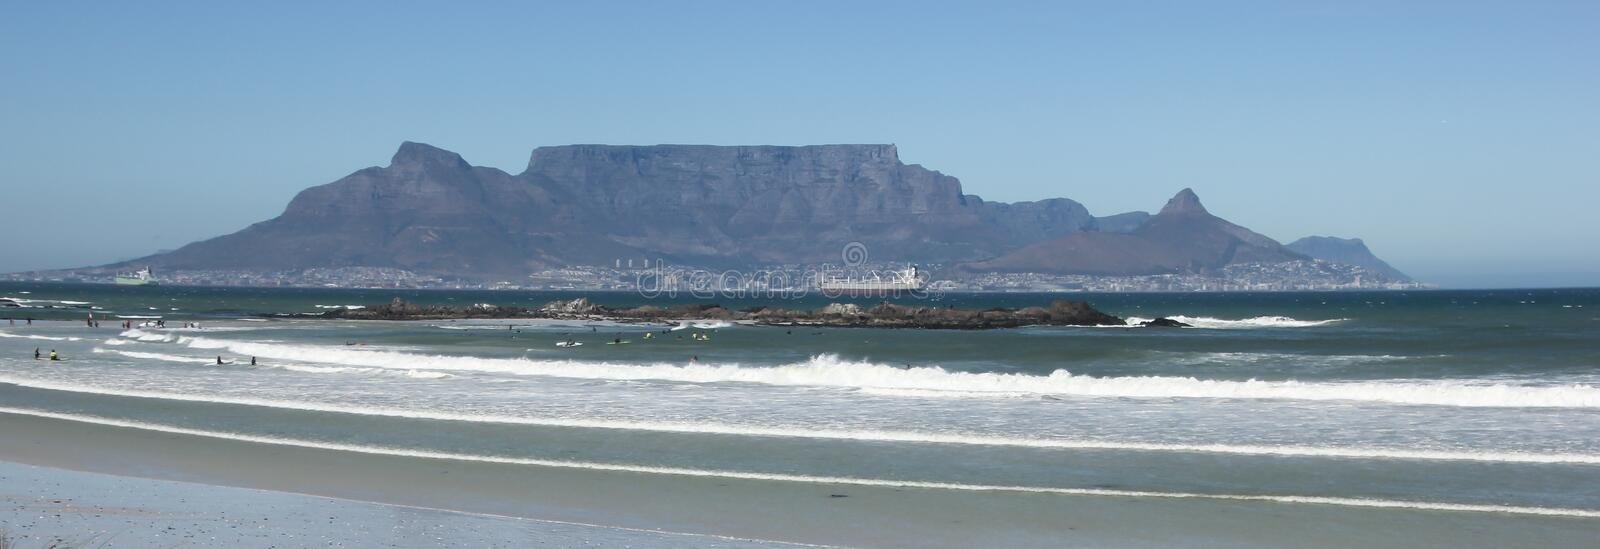 Download Table Mountain stock image. Image of panoramic, clear - 37457803